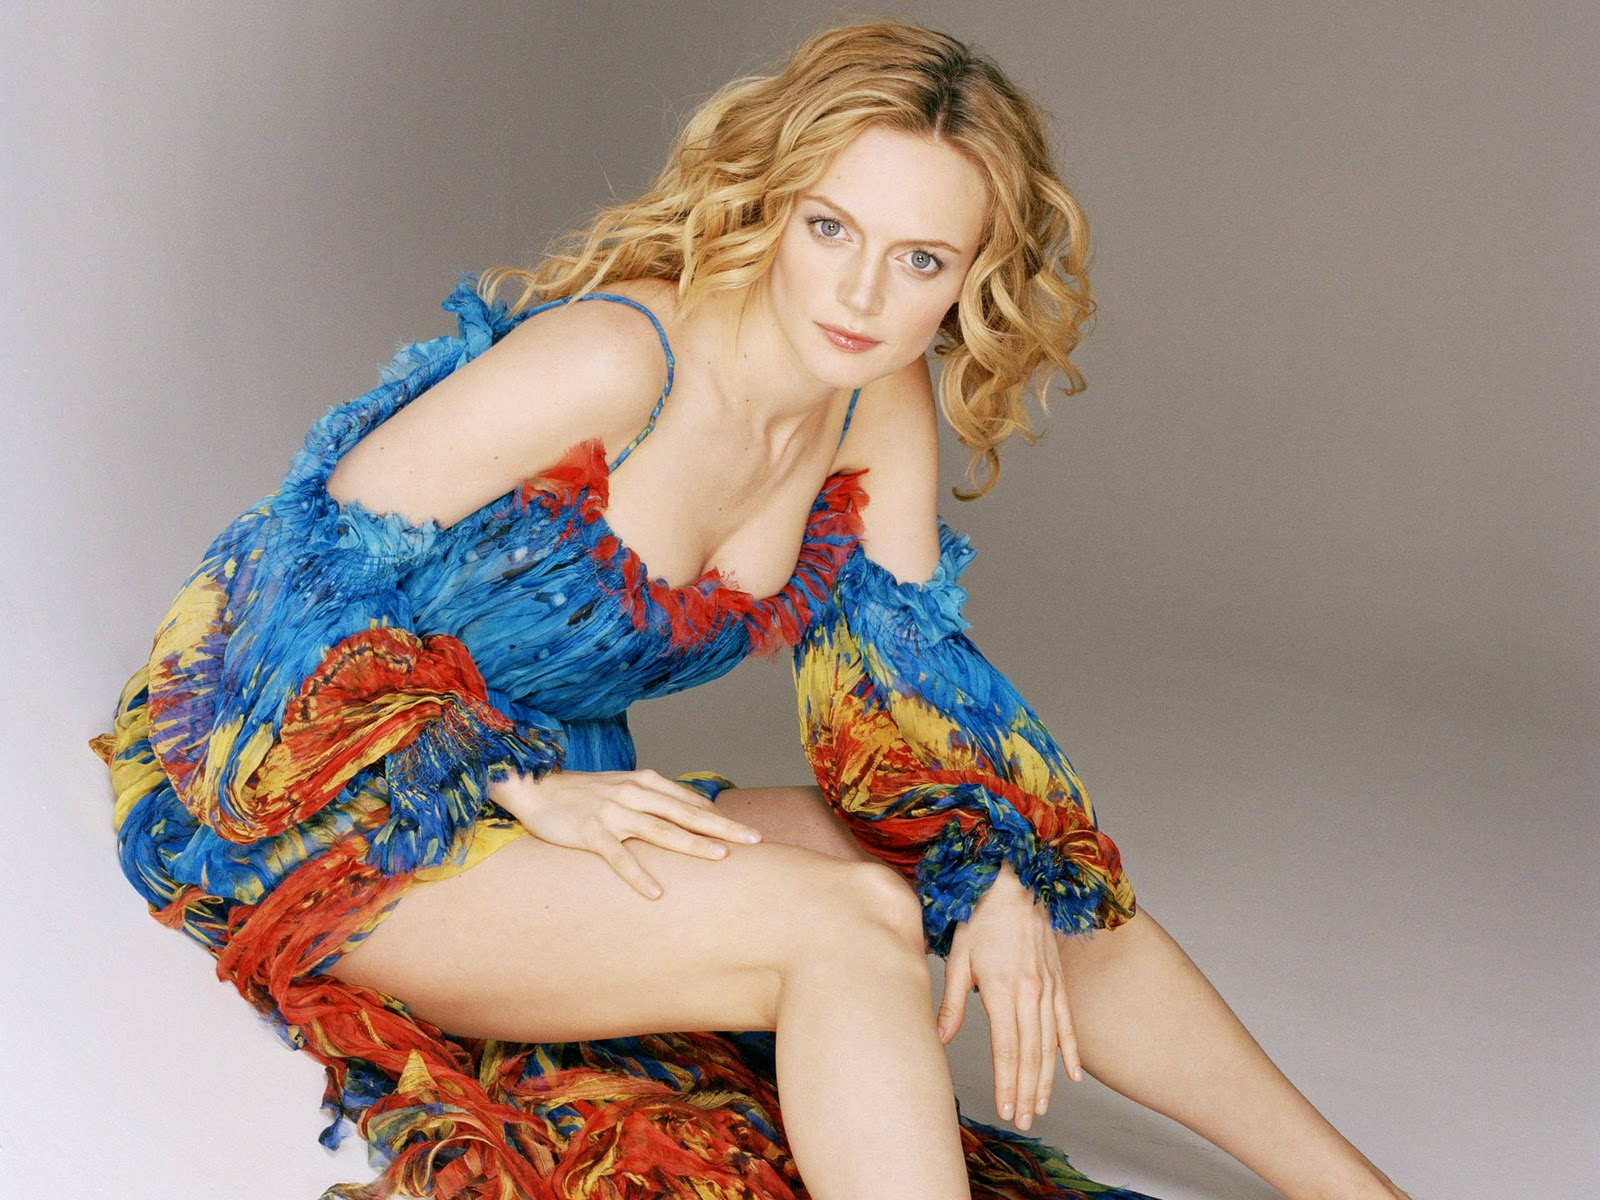 Heather Graham Hot all styles of hot fitness: the hot heather graham is an